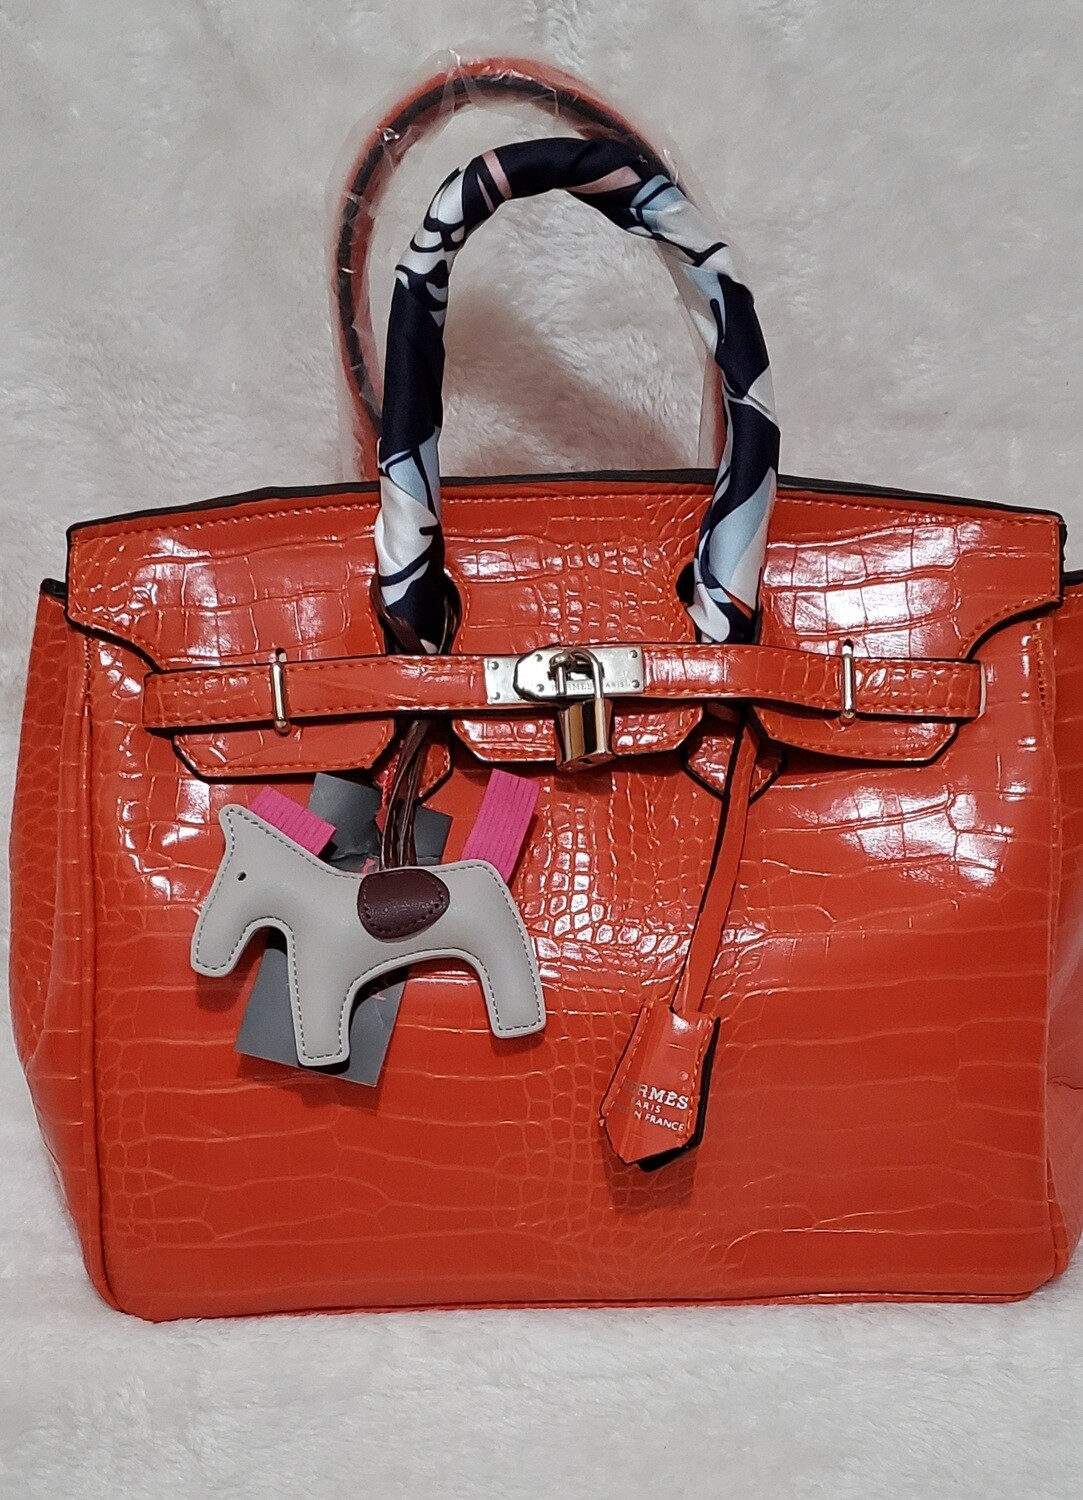 Orange  Satchel with Gri Gri Bag Charm